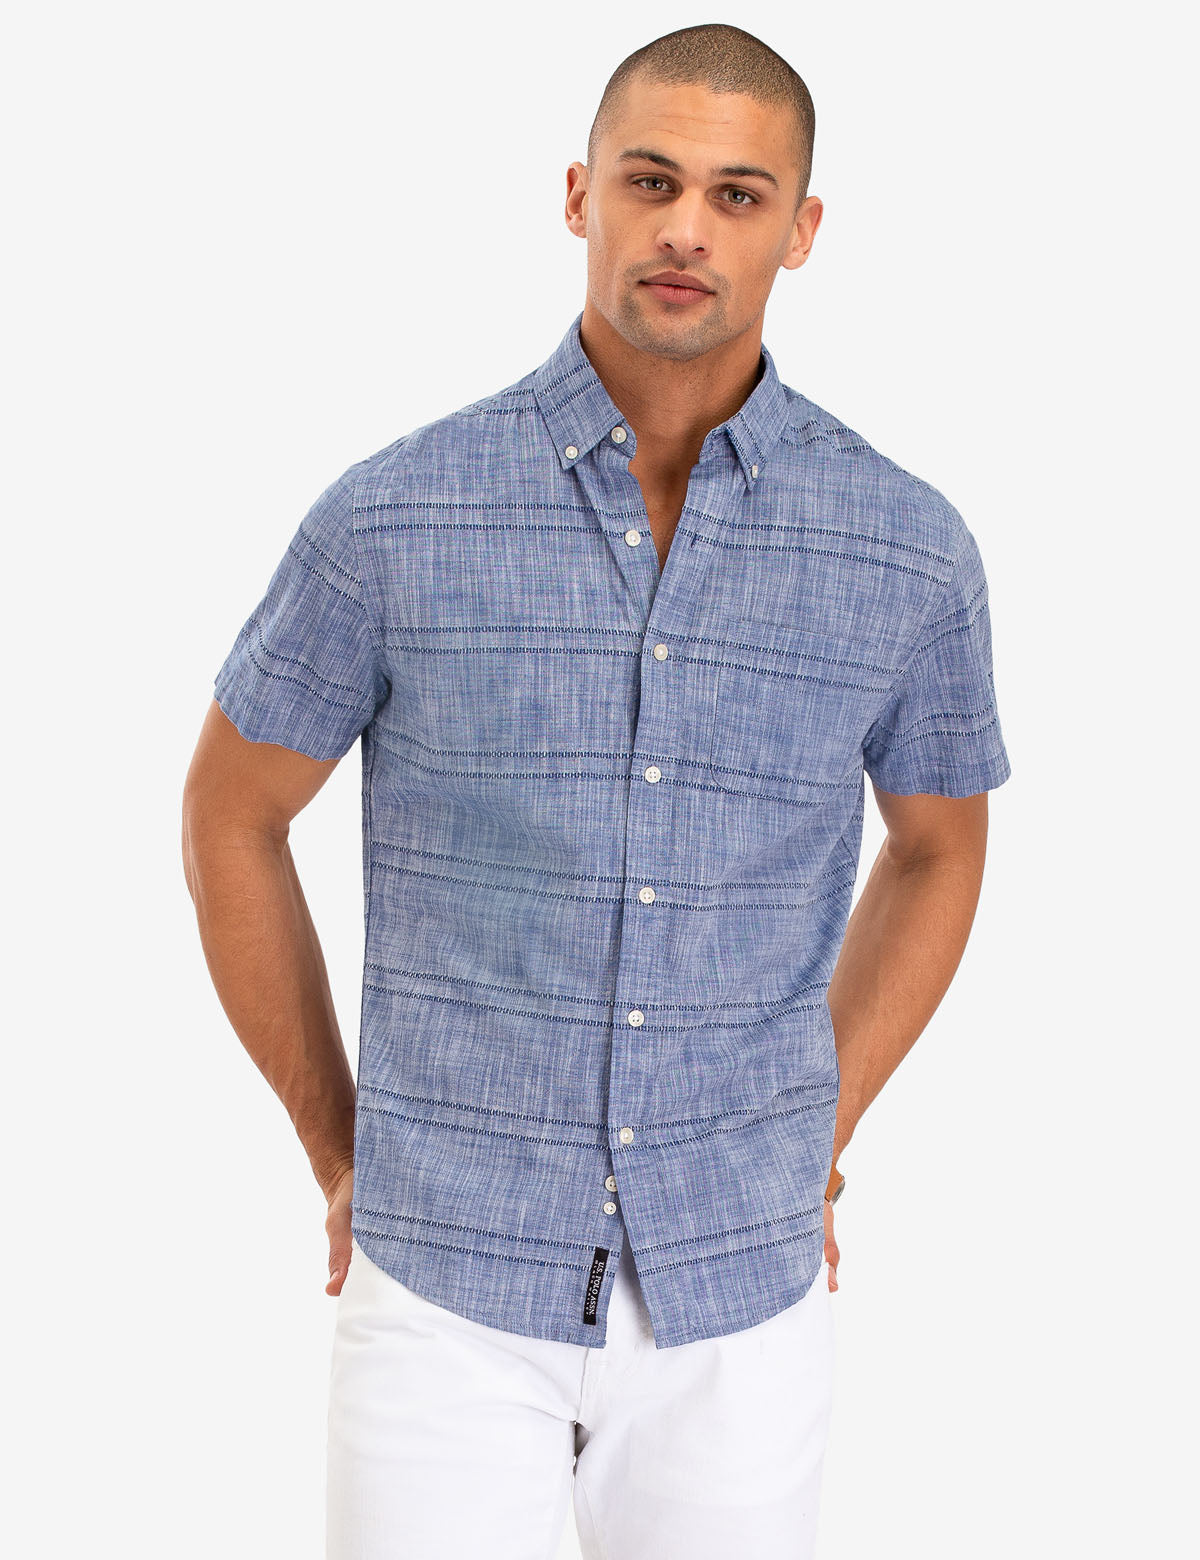 STRIPED DOBBY SHORT SLEEVE SHIRT - U.S. Polo Assn.